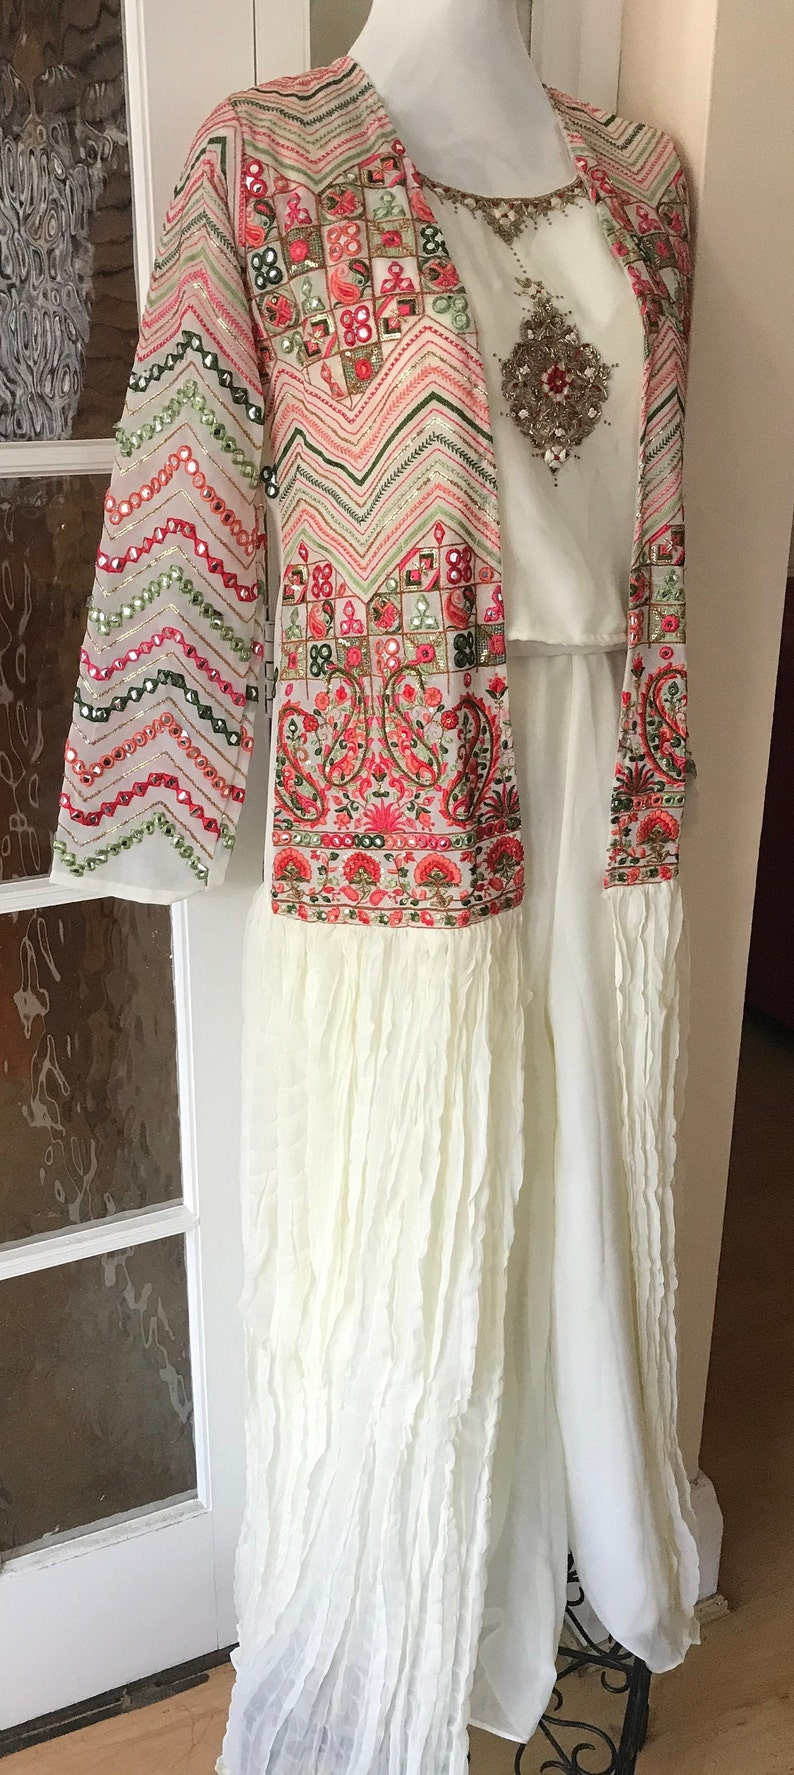 UK Stock-Crop top with long jacketGeorgetteEmbroidered PlazzoIndowesternGiftMother\u2019s Day